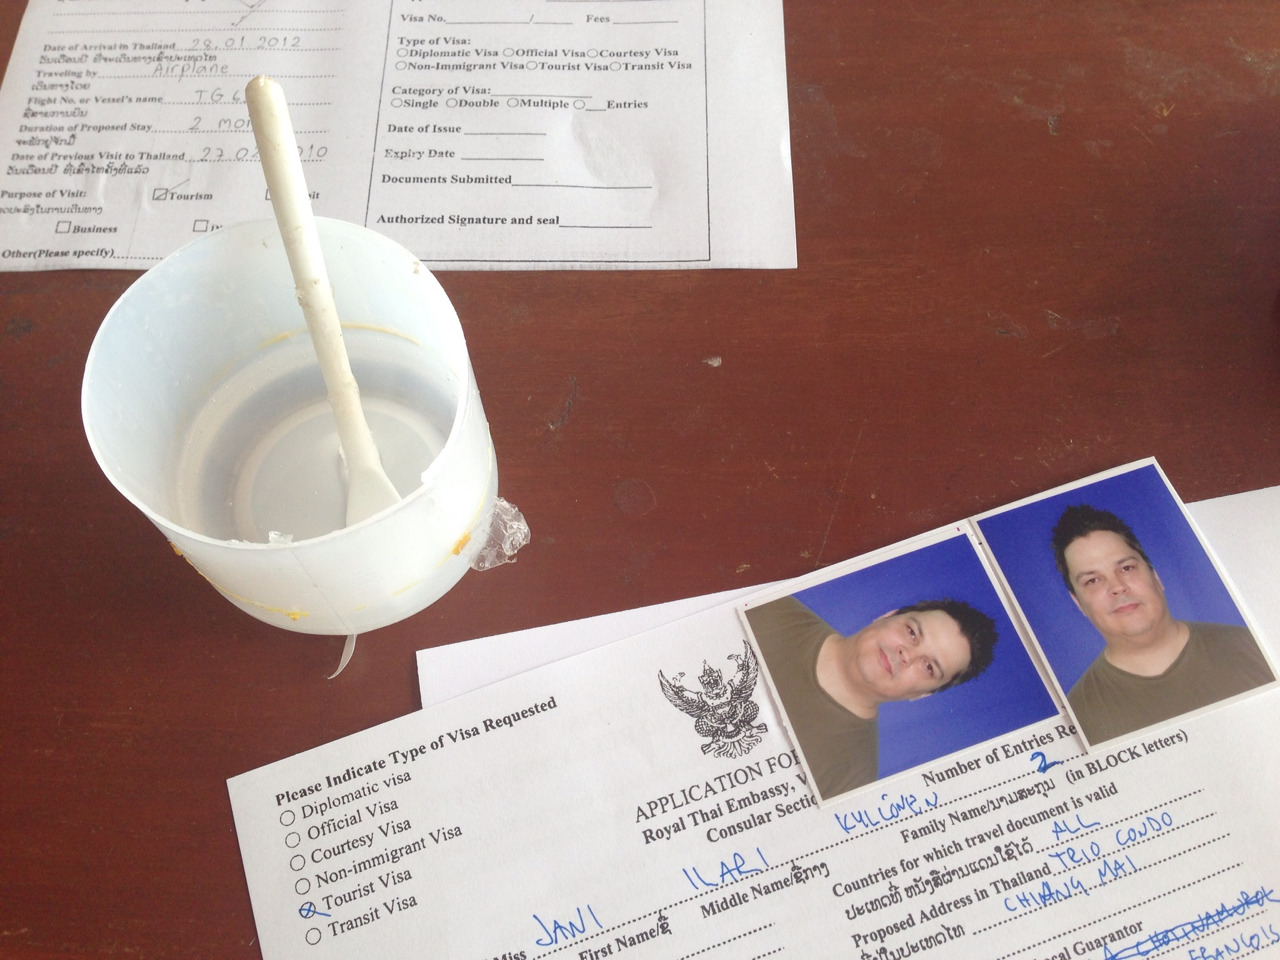 Visa running in Laos. I love the little pots of glue they provide.